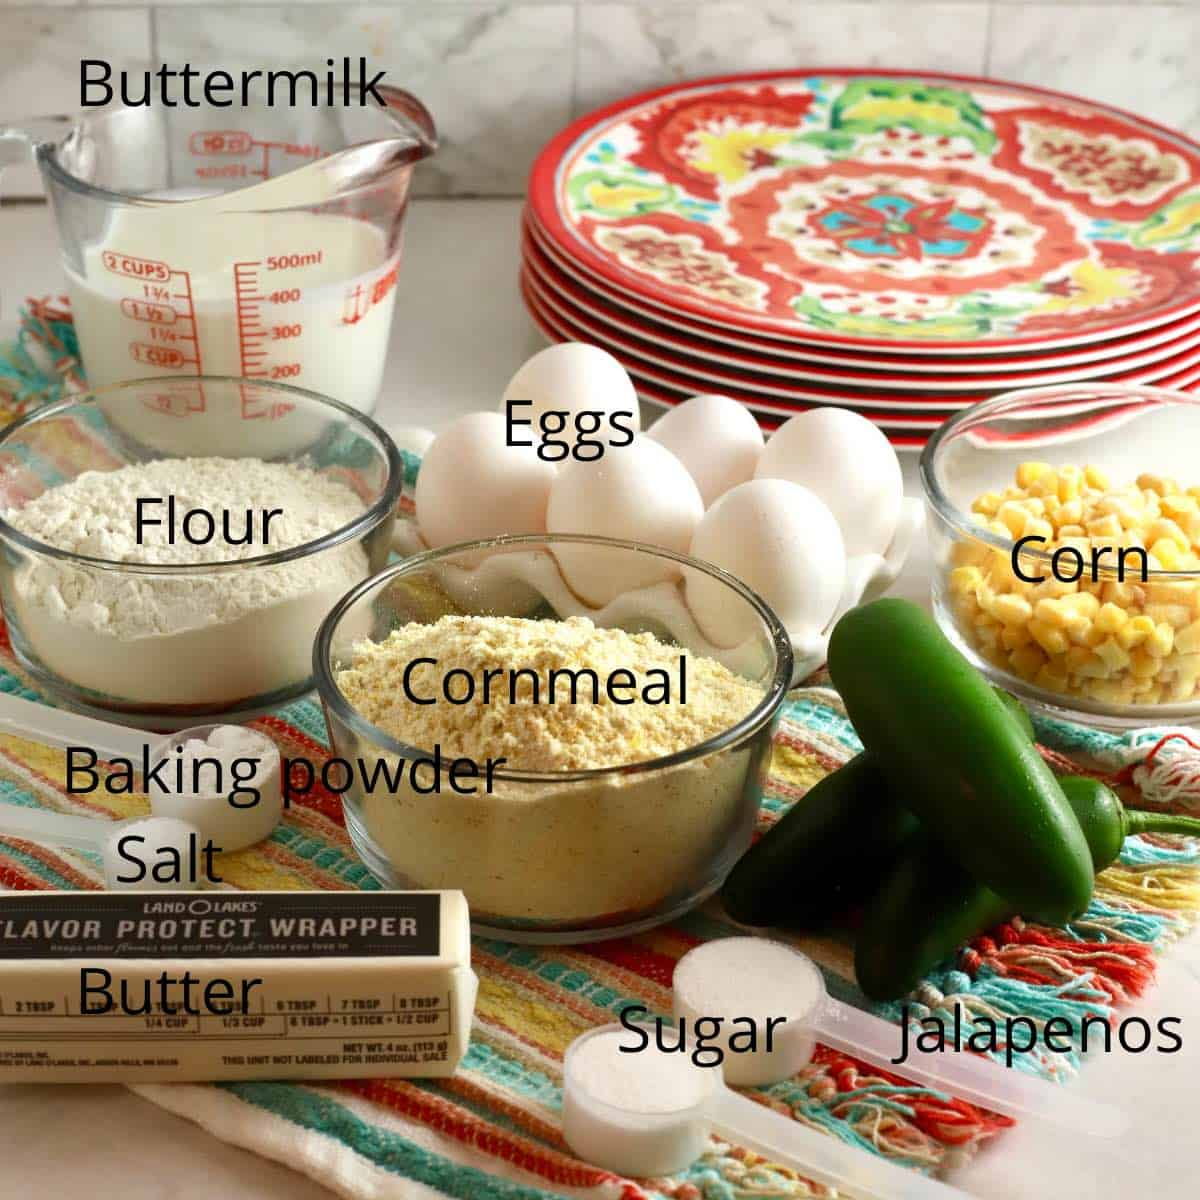 Cornbread ingredients including flour, cornmeal and eggs.